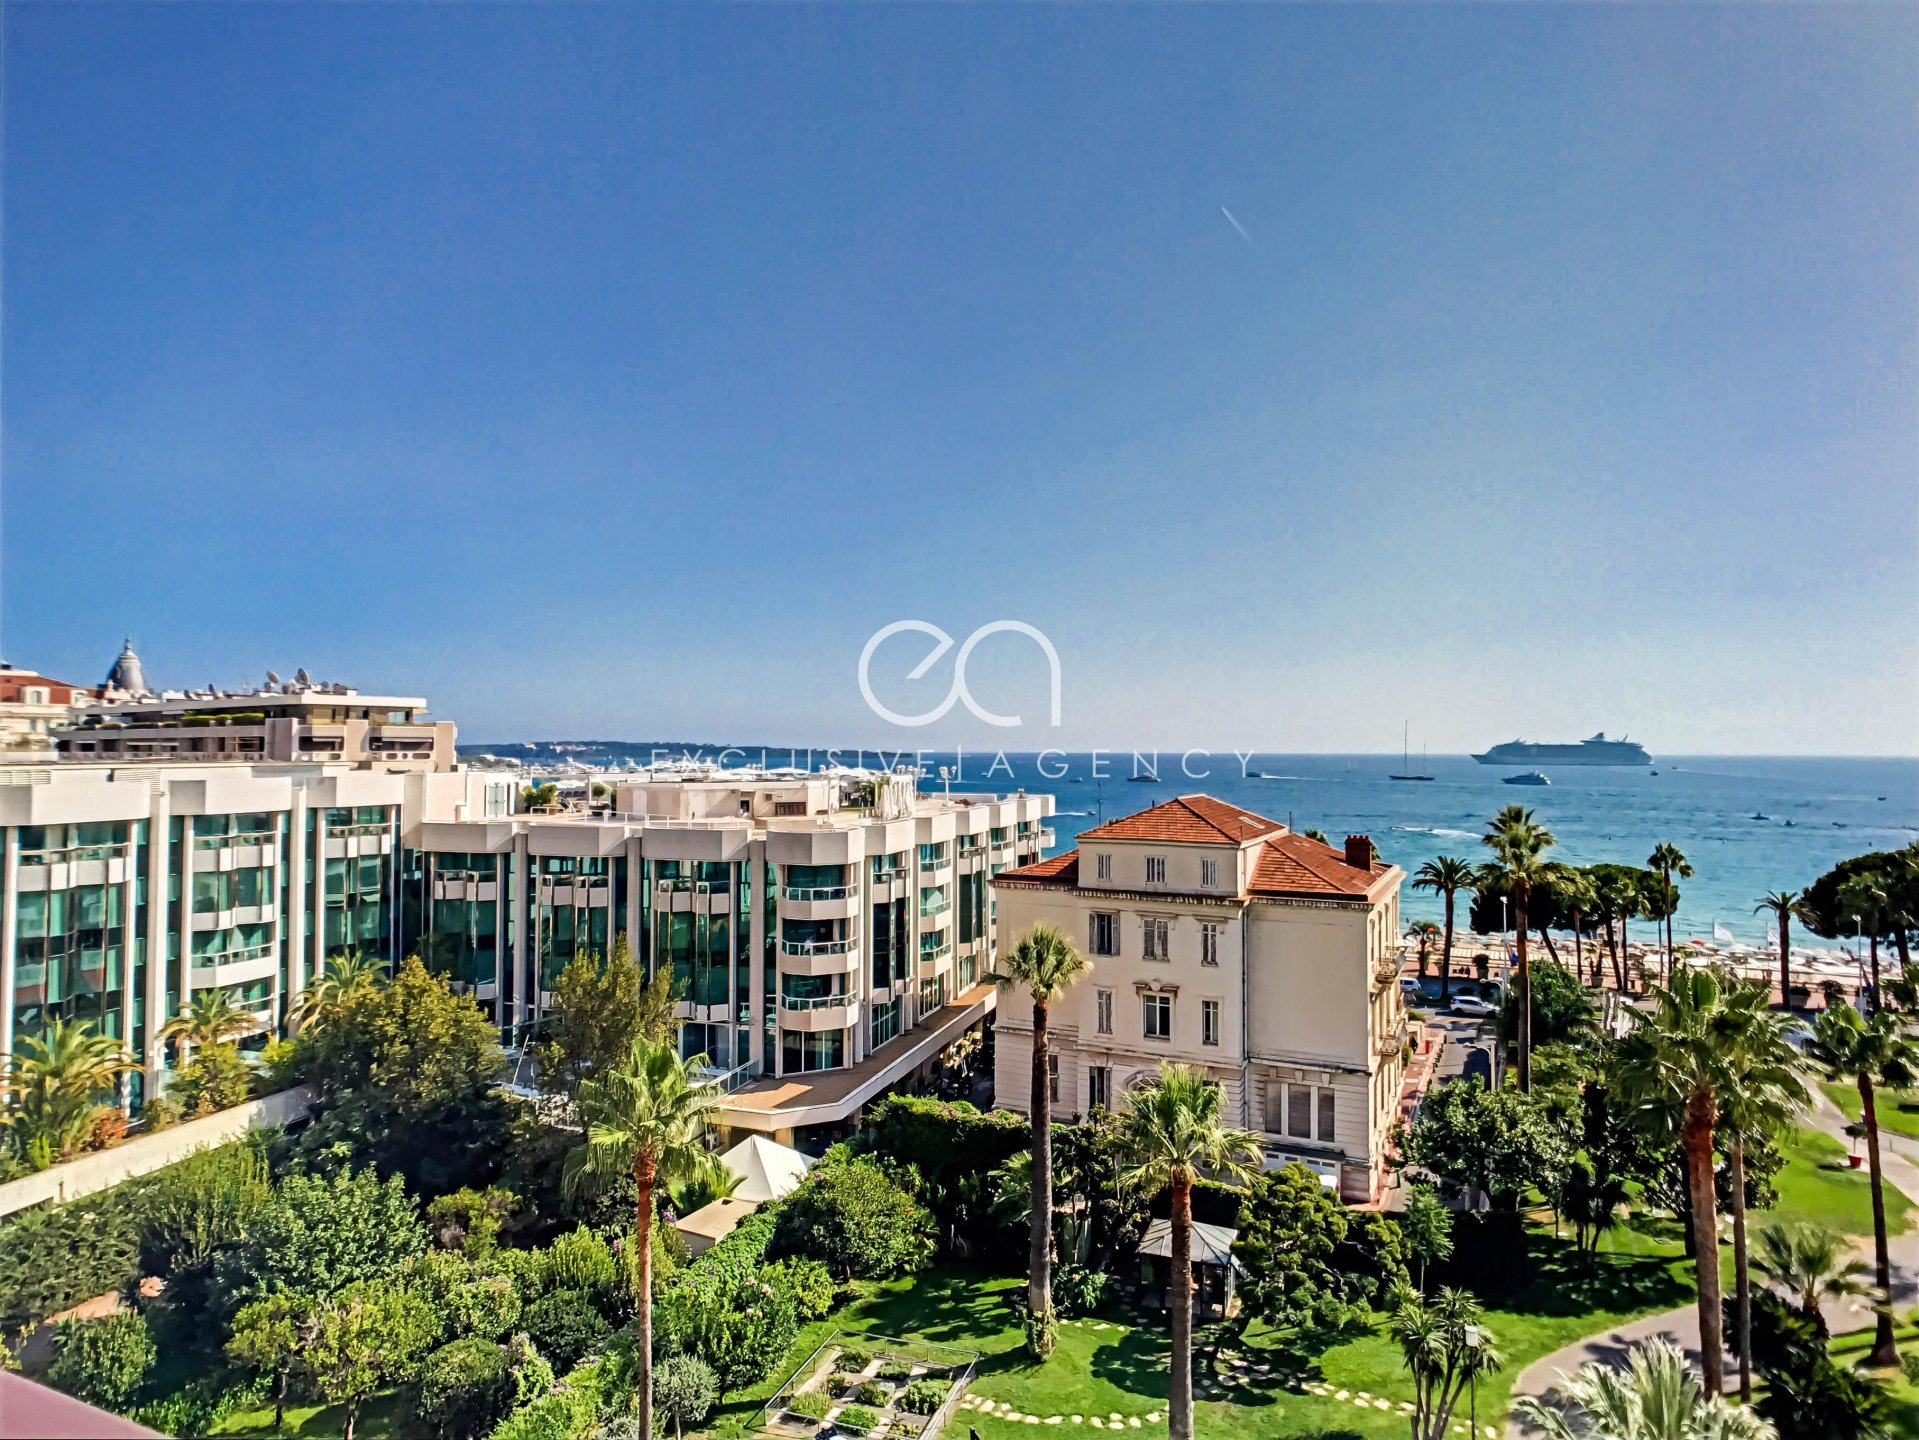 Cannes Croisette Grand Hôtel rental luxury 80m² 2 bedrooms apartment in front of the sea, with its 10m² terrace for 2 to 4 persons.